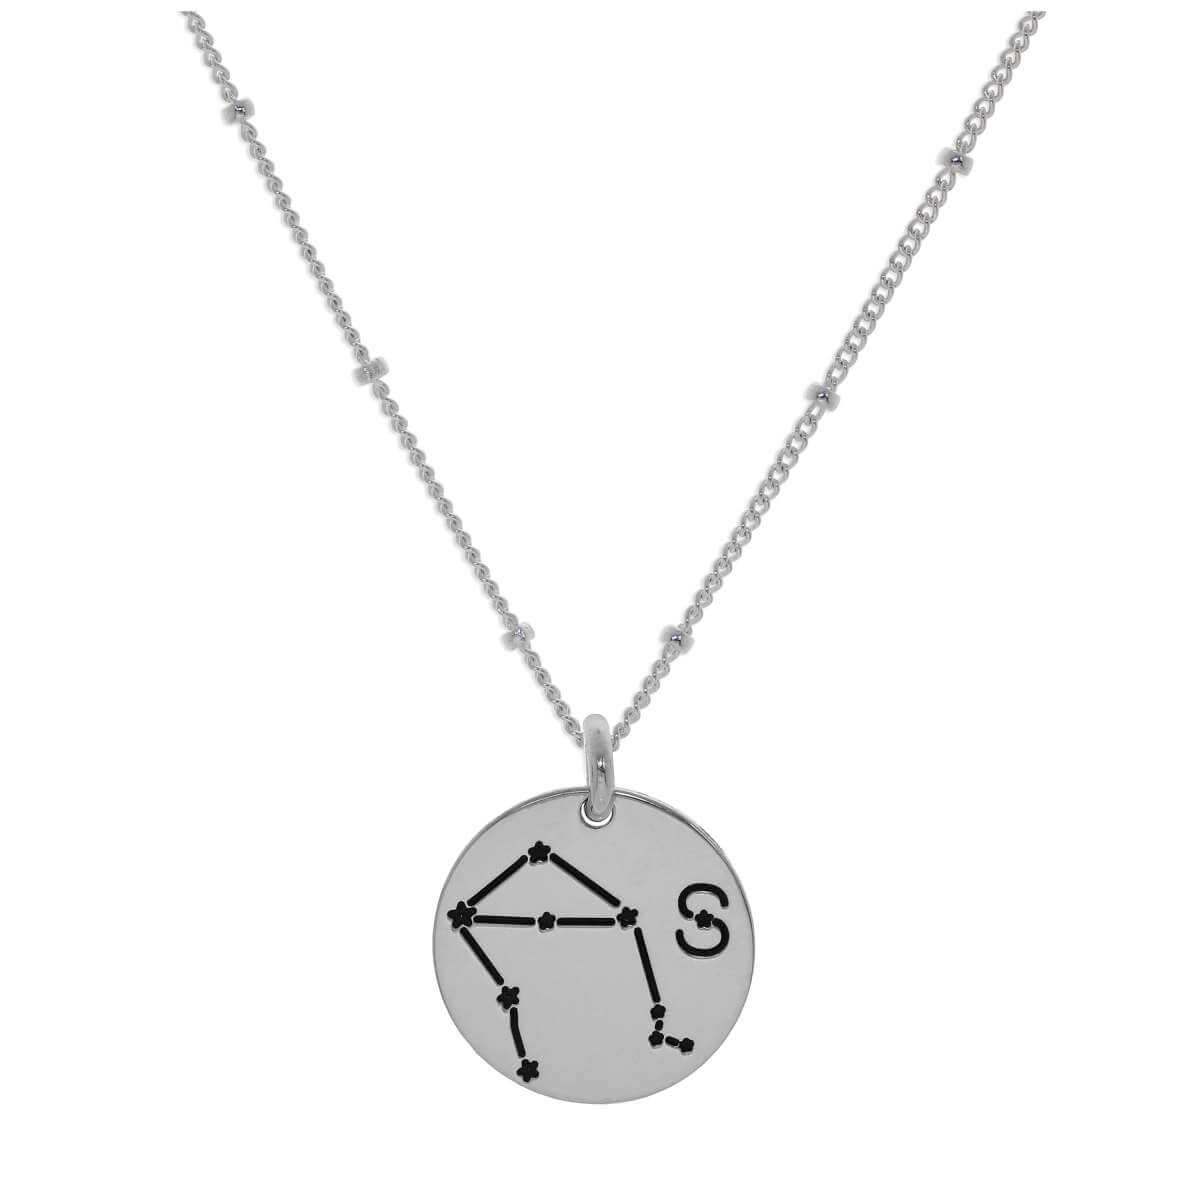 Bespoke Sterling Silver Libra Constellation & Initial Necklace 12-24 Inch